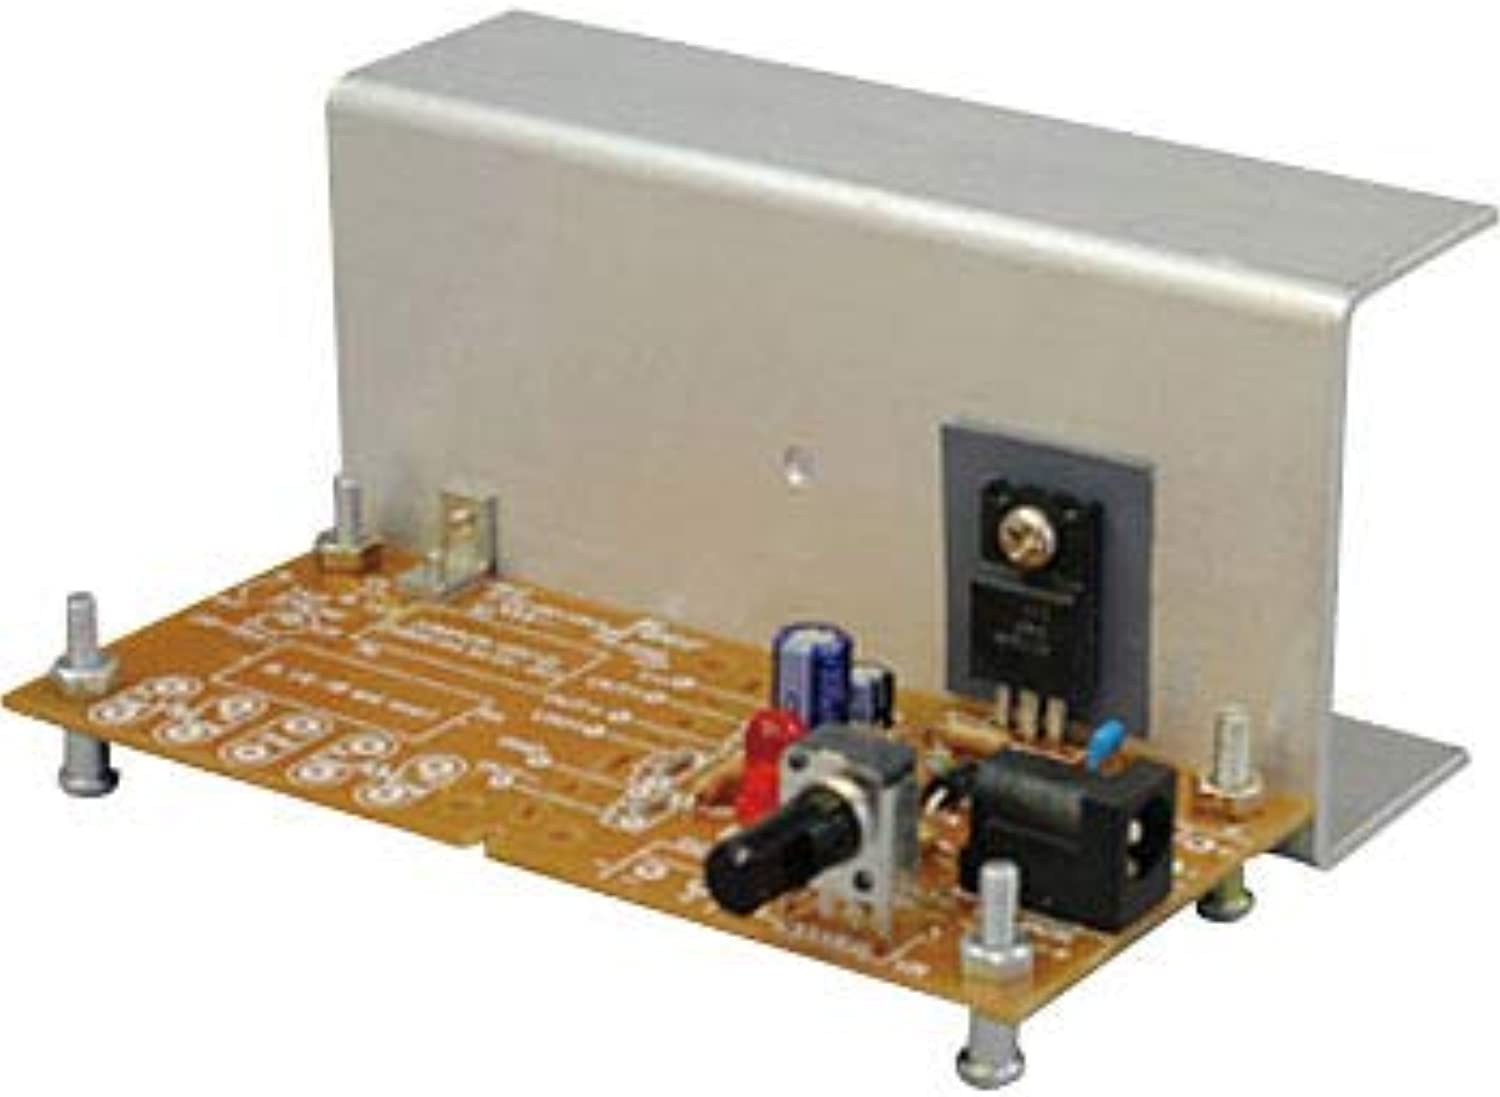 Variable output and stabilize the power supply unit